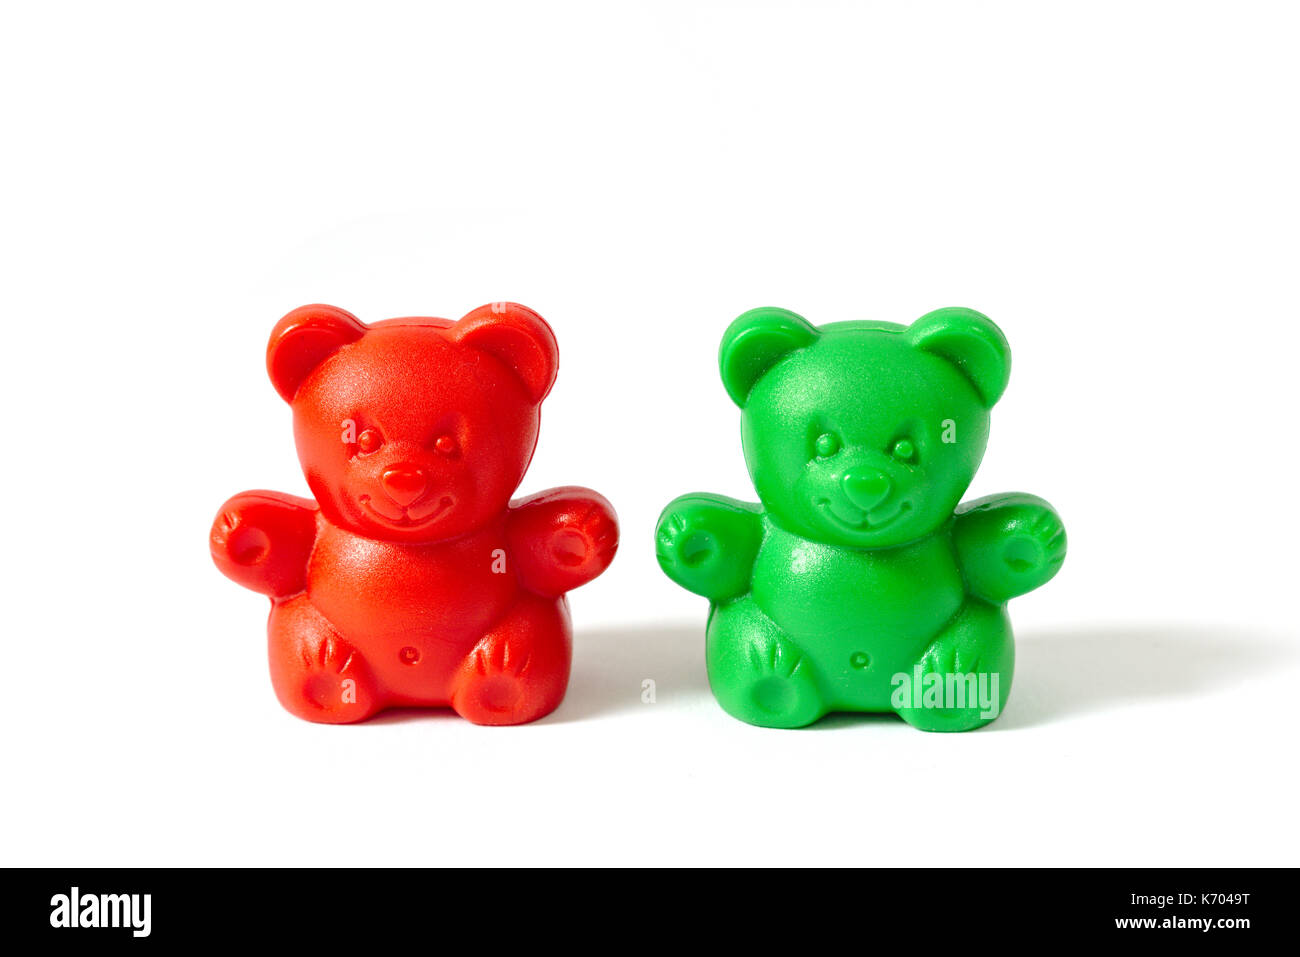 Small red and green plastic toy bears isolated on white background - Stock Image